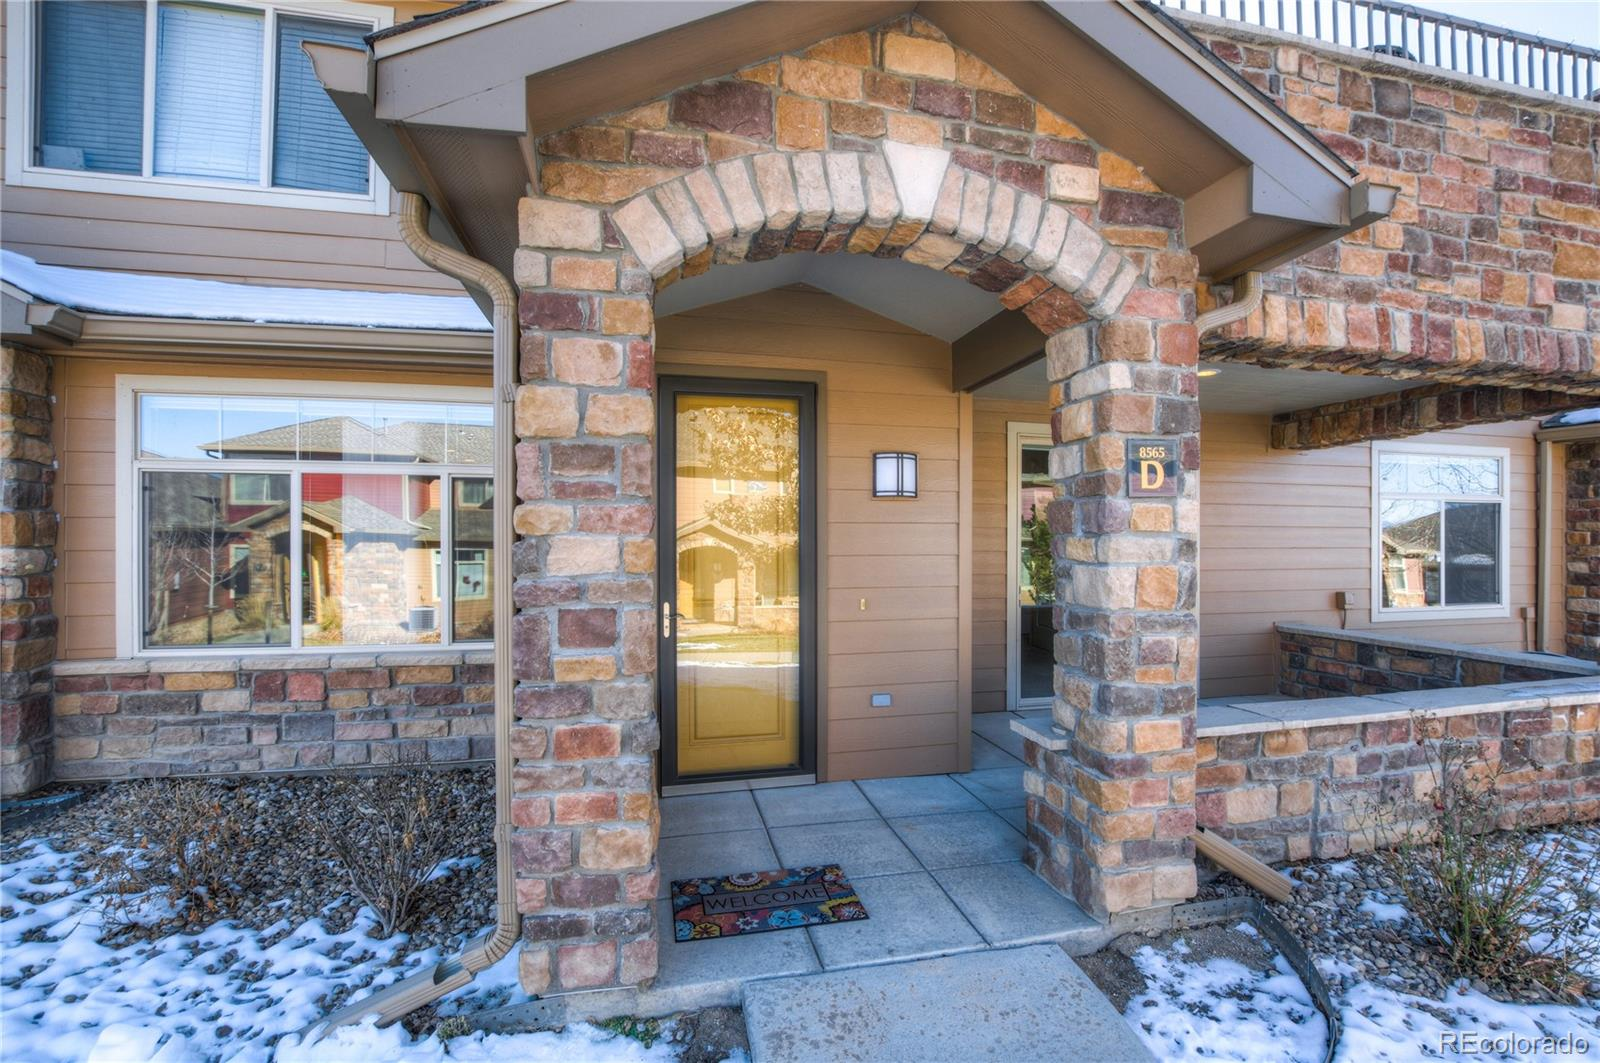 """Price improved! Well-maintained ranch-style condo in Gold Peak at Palomino Park Resort. This community has it all! 29,000 sq. ft. clubhouse, pool w/ hot tubs, restaurant, sports fields, dog park, trails & playground. BBQ pavilion, cabana & hot tub steps away. 9' ceilings, gas fireplace & pre-wiring for digital cable, phone, & high-speed internet. Open-concept layout, gourmet kitchen w/ natural maple cabinets, 36"""" upper cabinets & European hinges, SS appliances, large breakfast nook & plenty of counter space. Laundry room, attached garage w/ a 16""""x5"""" storage area, PLUS a second garage deeded w/ this unit. The master suite has a walk-in closet, large soaking tub & separate shower. Cellular shades & vertical blinds on all windows. Private covered patio. Carpets professionally cleaned; cut Berber w/ 1/2"""", 6 lb. pad, still in great shape. Ceramic tile in entry, kitchen & bathrooms. Next to The Links Golf Course; parks, hiking trails, rec centers, shops, restaurants, highways & transit nearby...hard to beat this location!"""